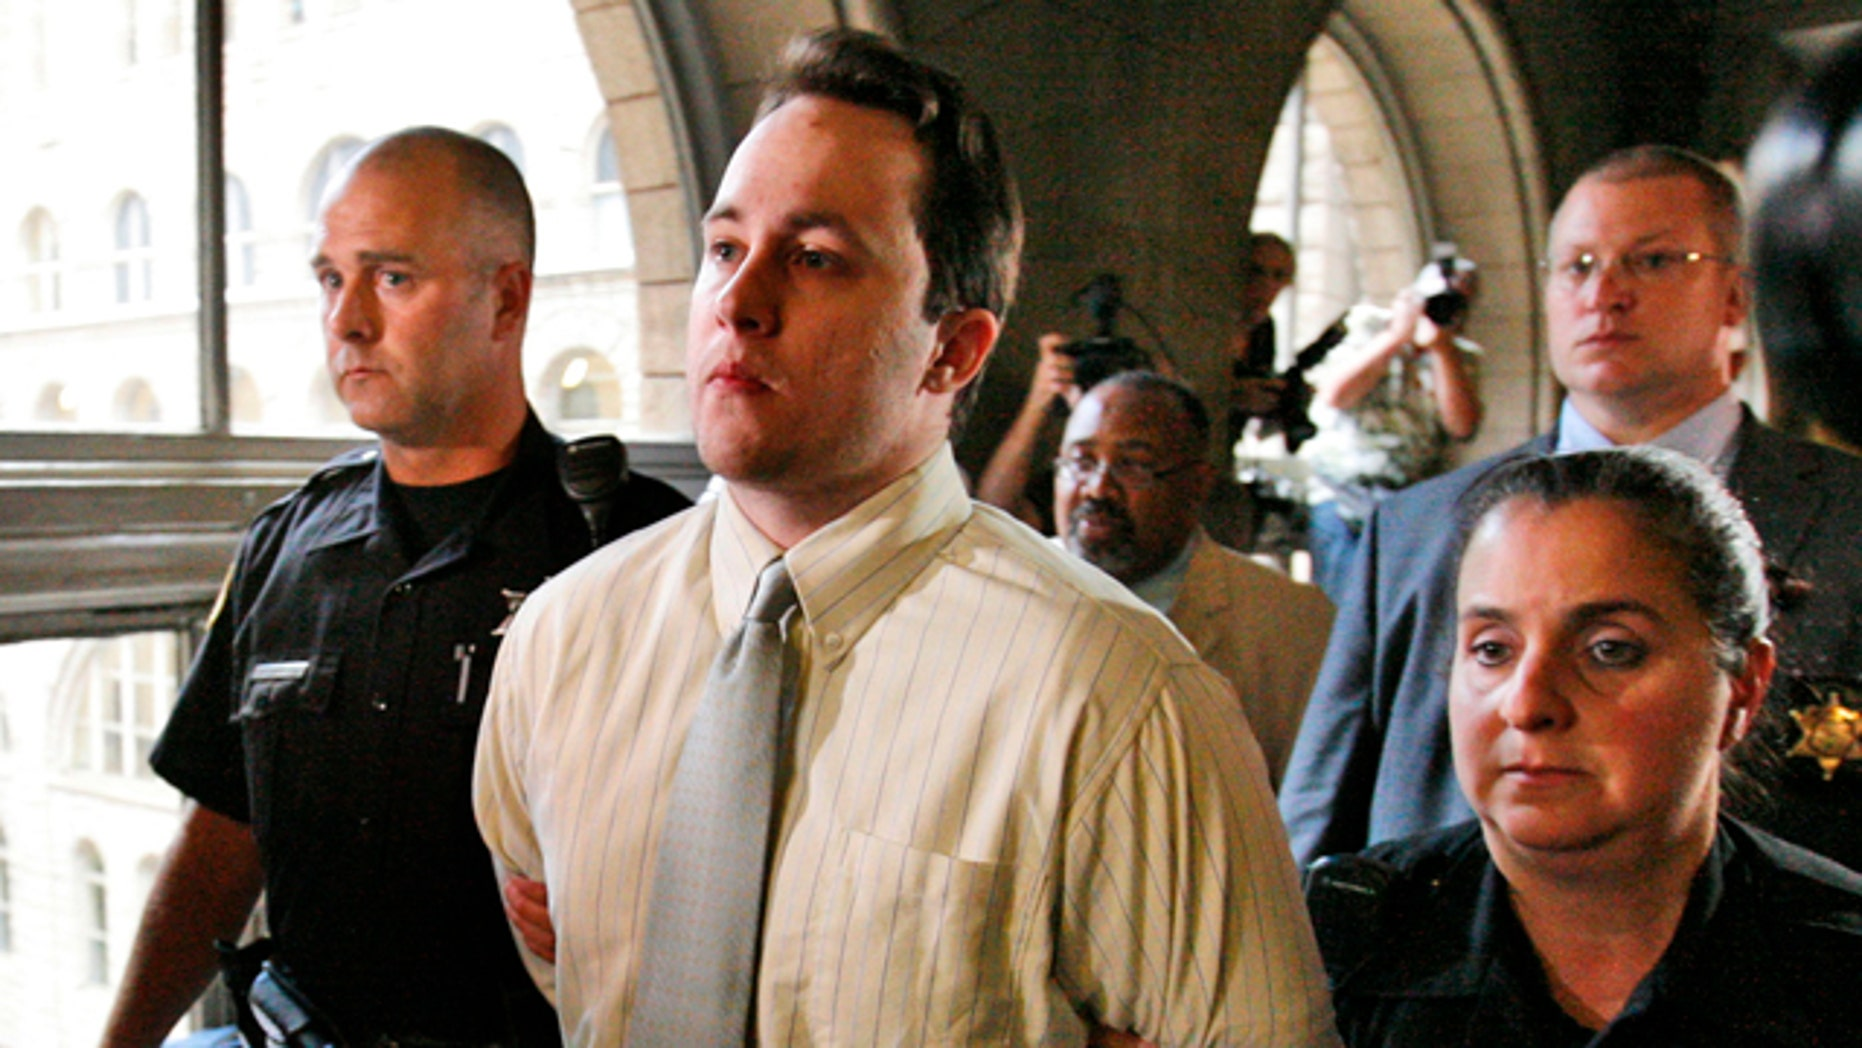 June 28: Richard Poplawski, center, is escorted by Allegheny County Sherriffs after being sentenced to death by lethal injection for the killing of three Pittsburgh Police officers.